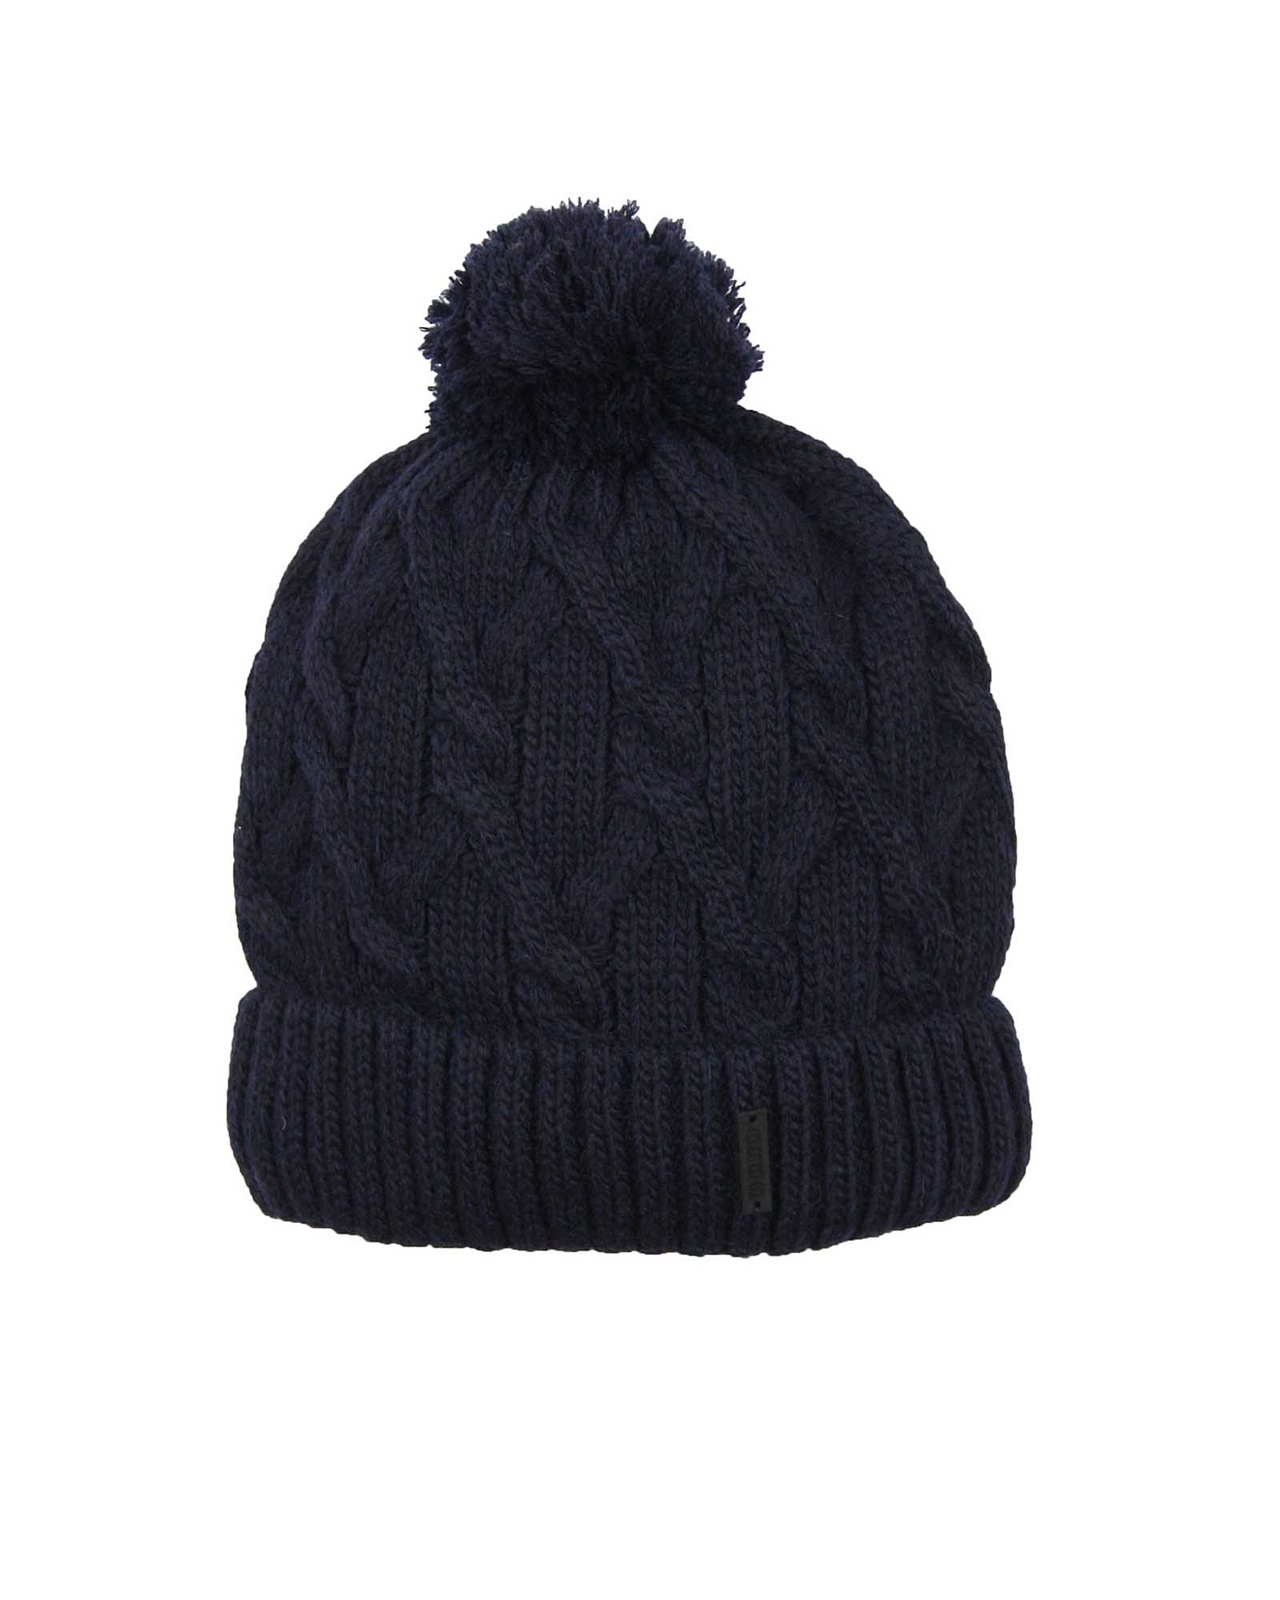 508dd6568d0 Barbaras Boys  Cable Knit Hat in Navy with Pompom - Barbara Hats ...